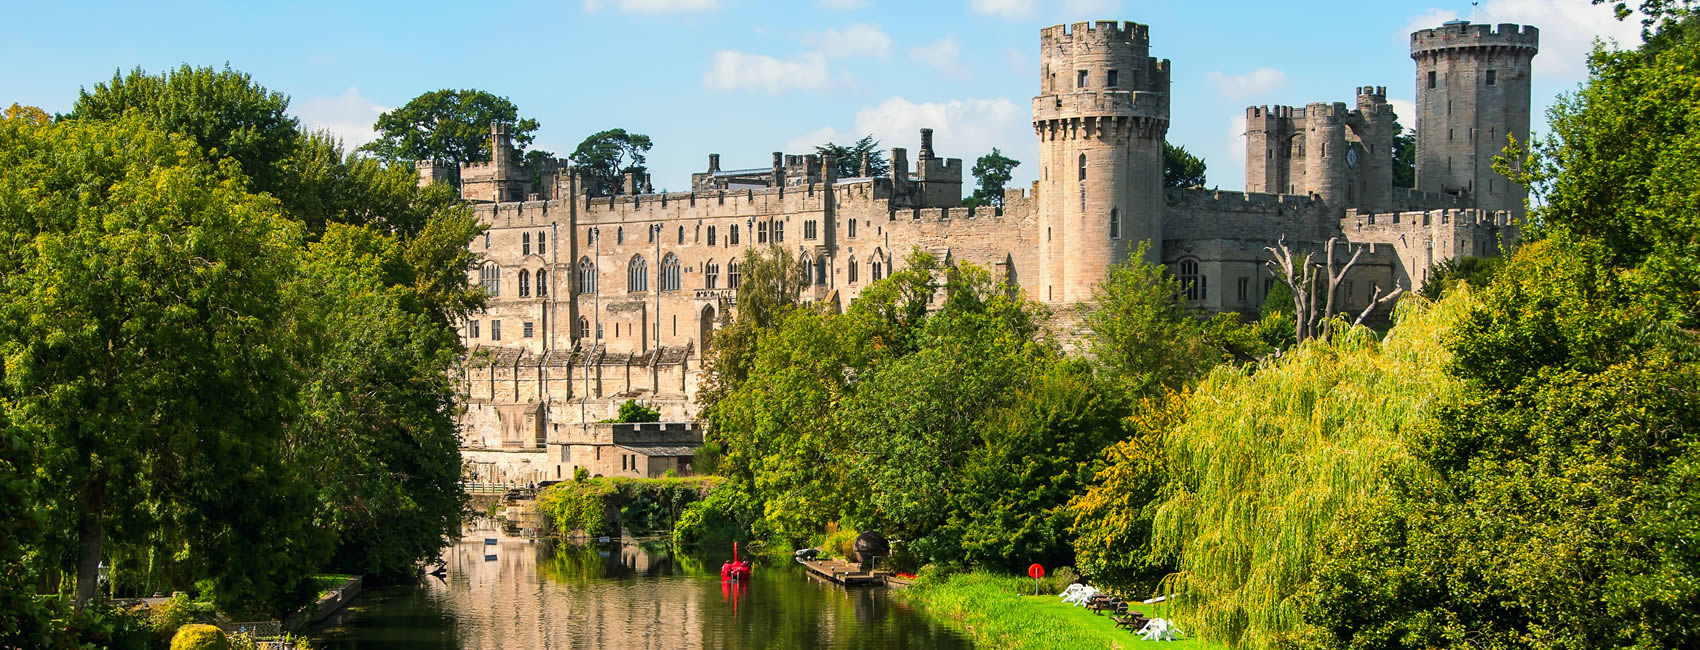 Warwick Castle in West Midlands region